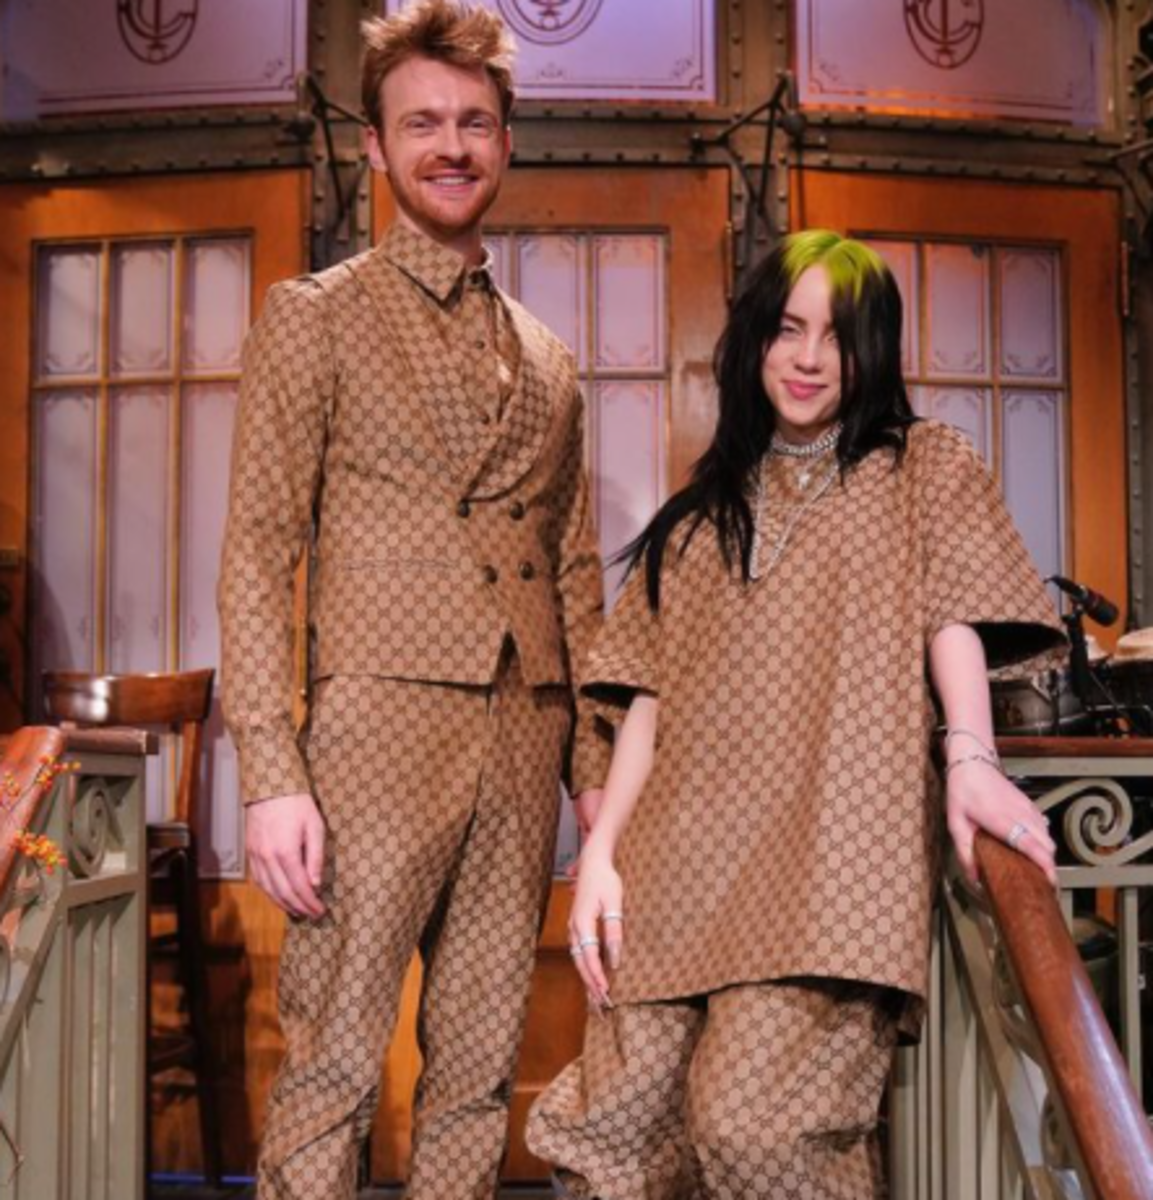 Finneas O'Connell and Billie Eilish